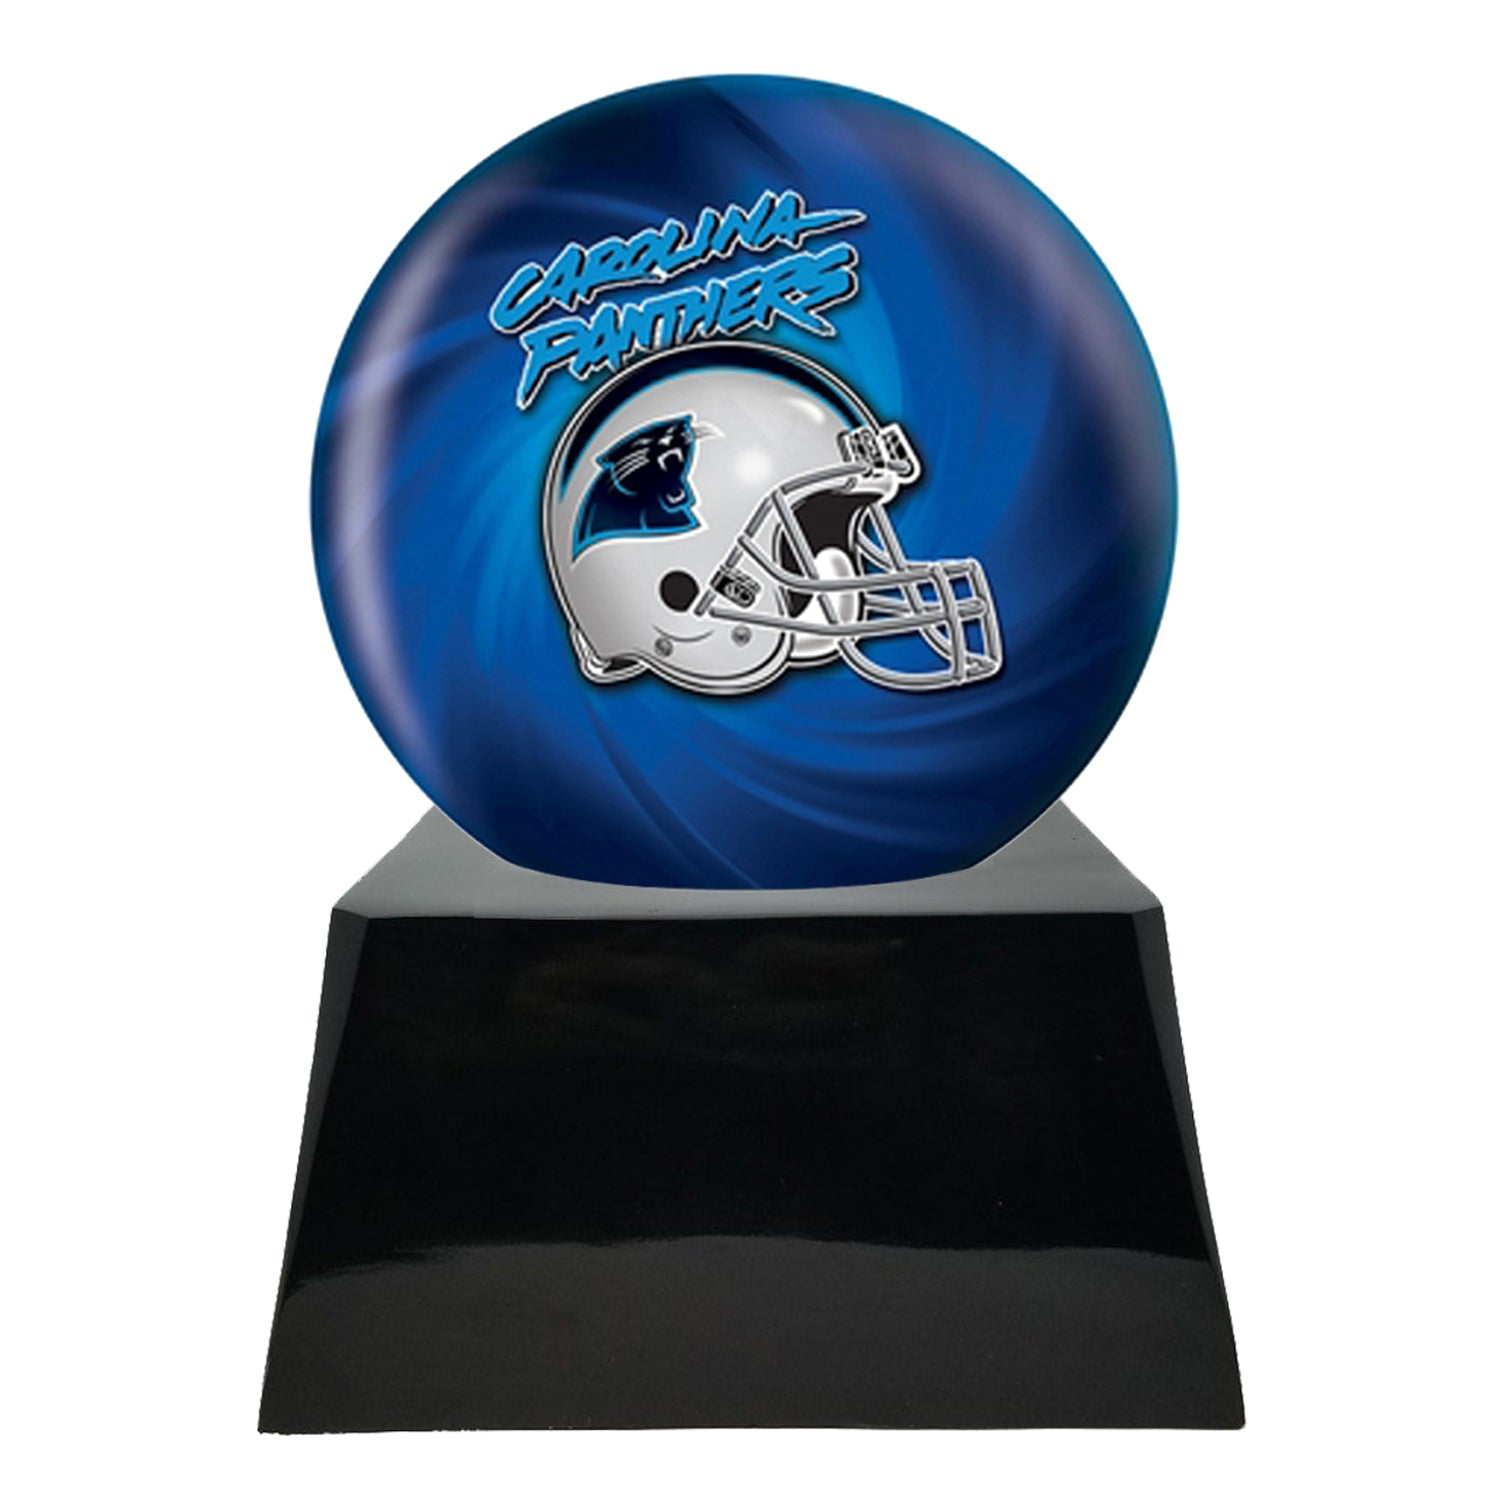 Football Cremation Urn and Carolina Panthers Ball Decor with Custom Metal Plaque Team Cremation Urn